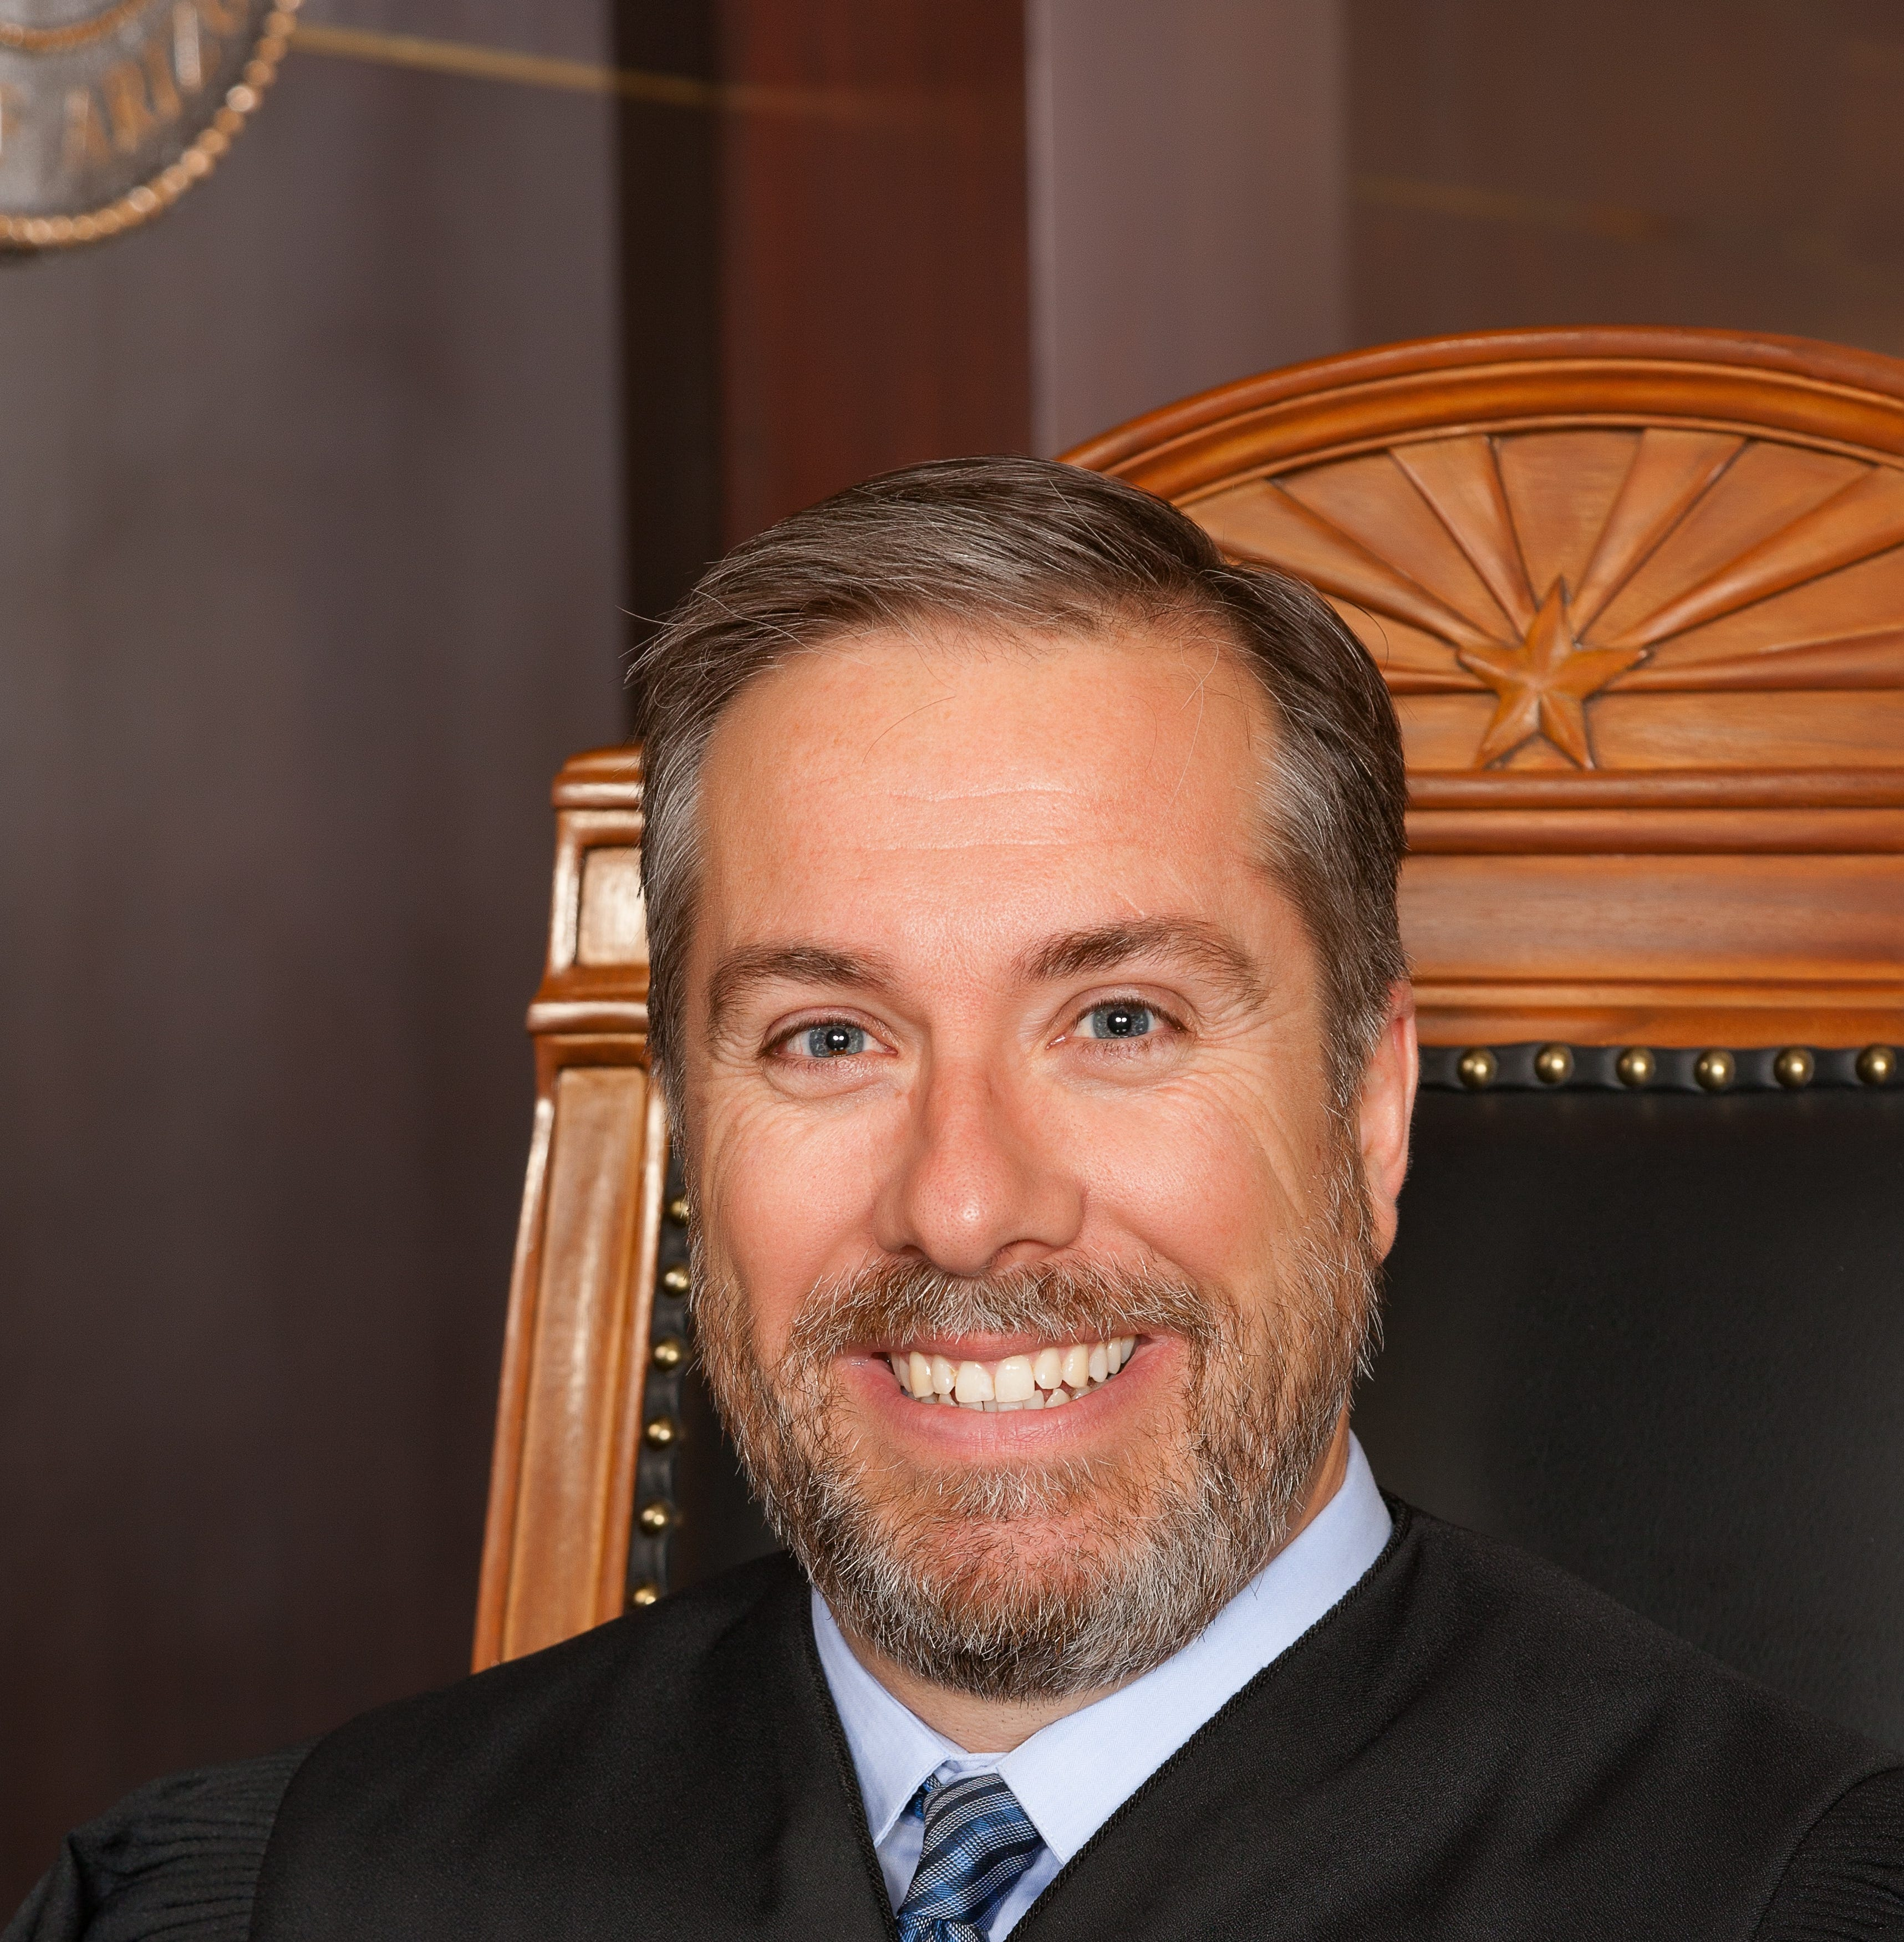 Ducey appoints Judge James Beene to Arizona Supreme Court, cementing handpicked majority